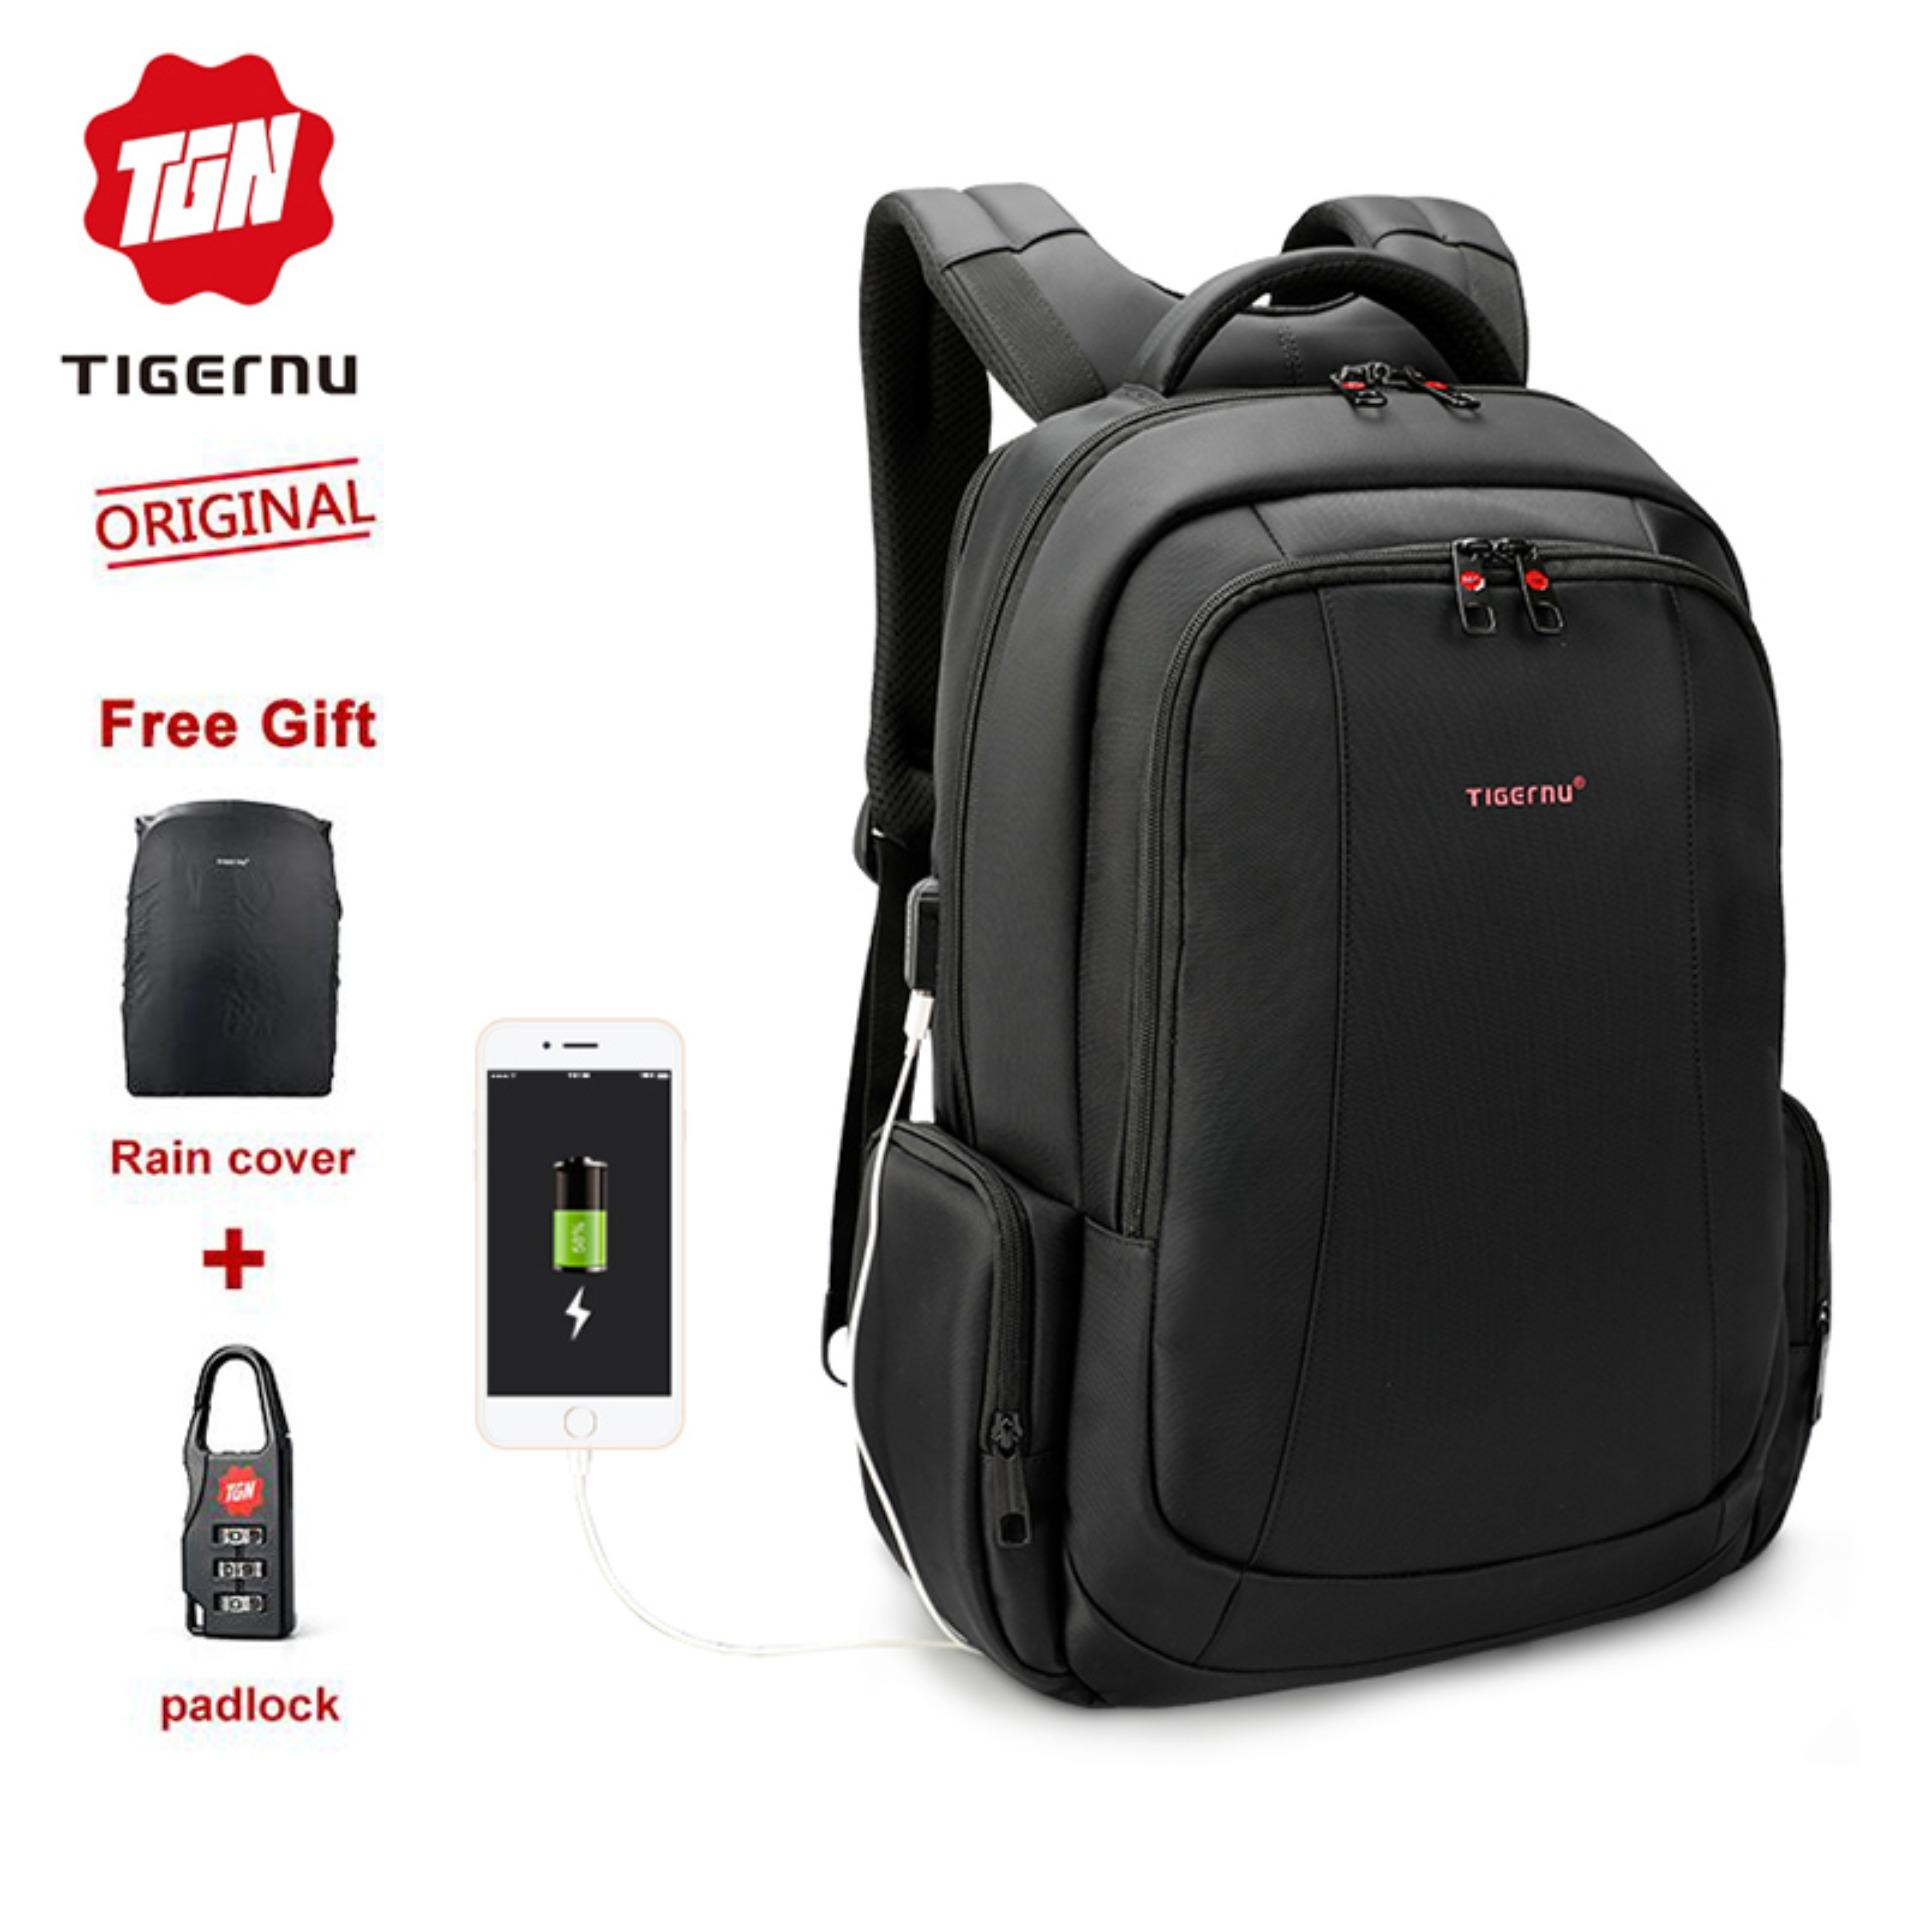 e0ff07305 Tigernu Hot selling Anti-theft waterproof USB Charging Port Laptop Backpack  for 15.6 Inches Travel